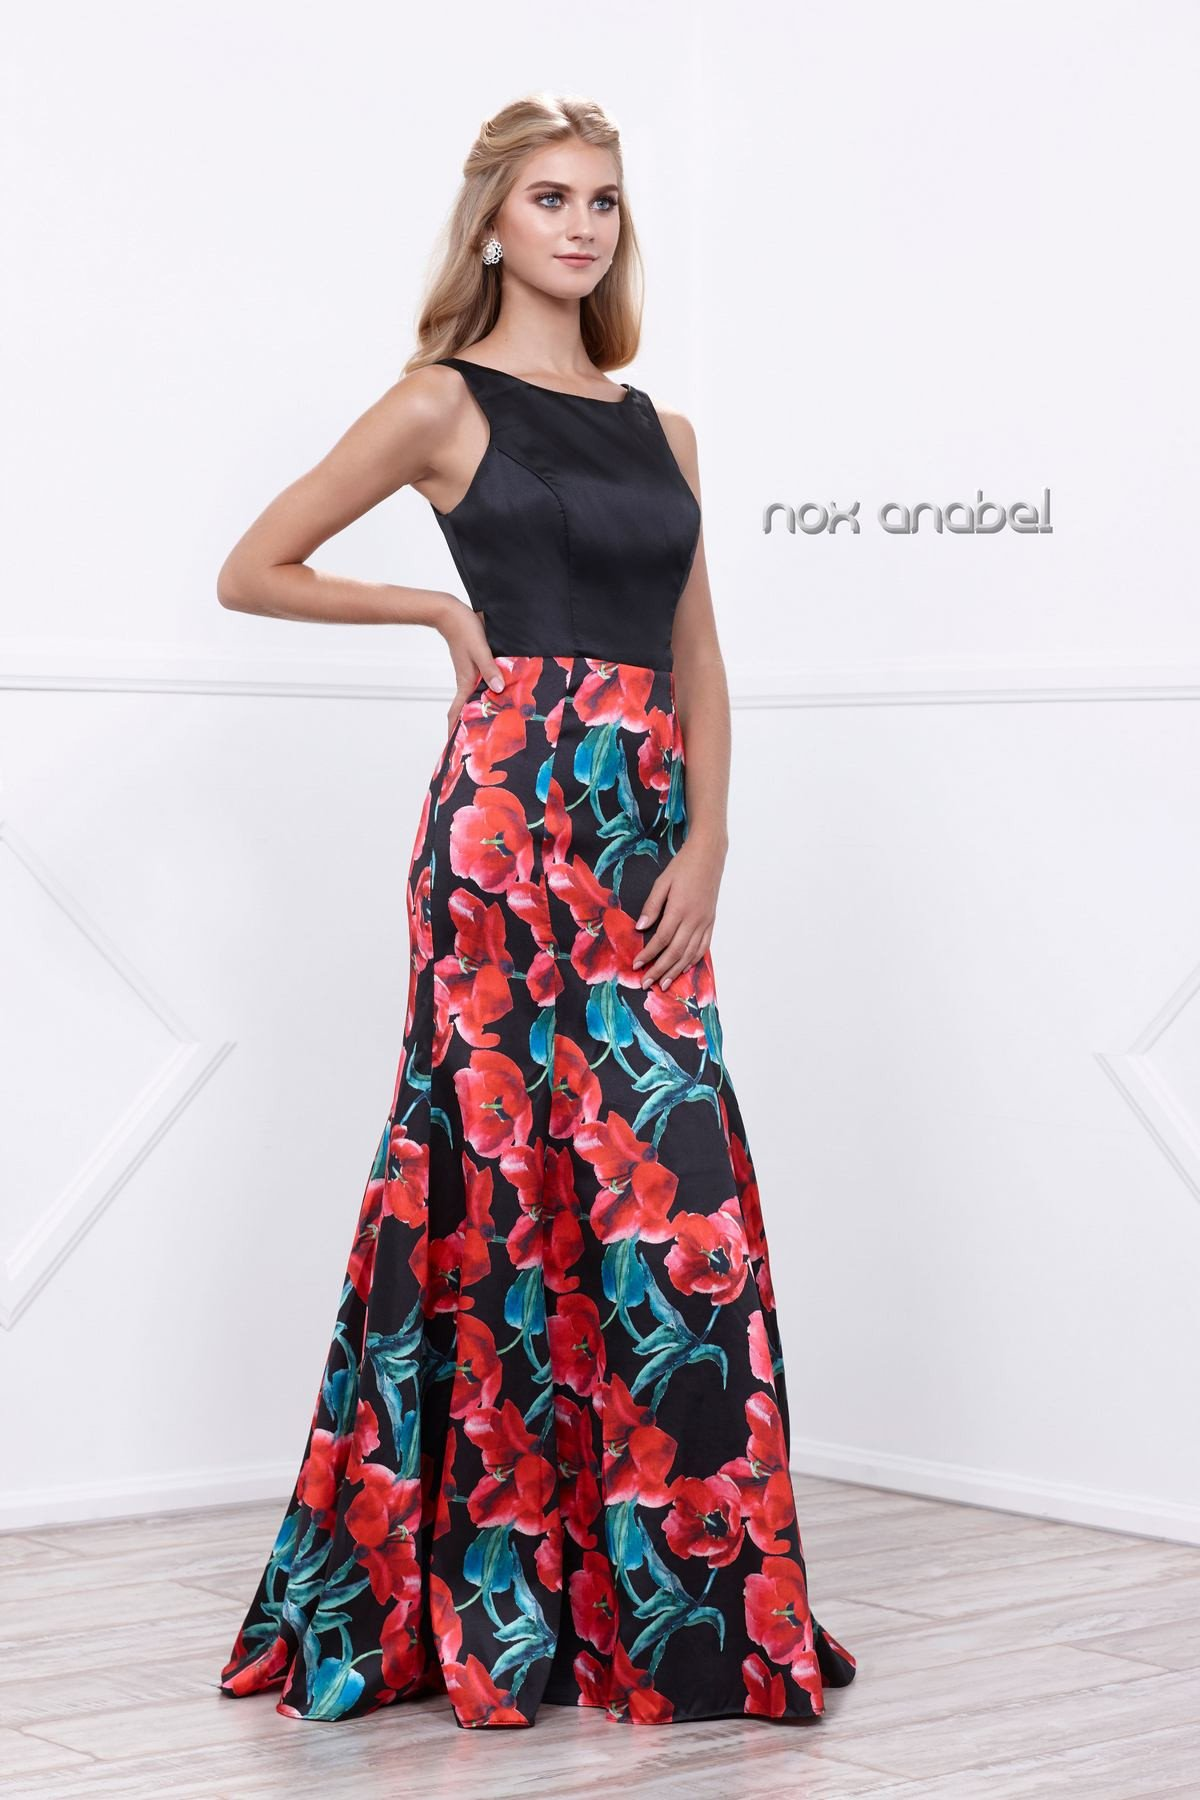 Sleeveless black dress with red floral print by nox anabel